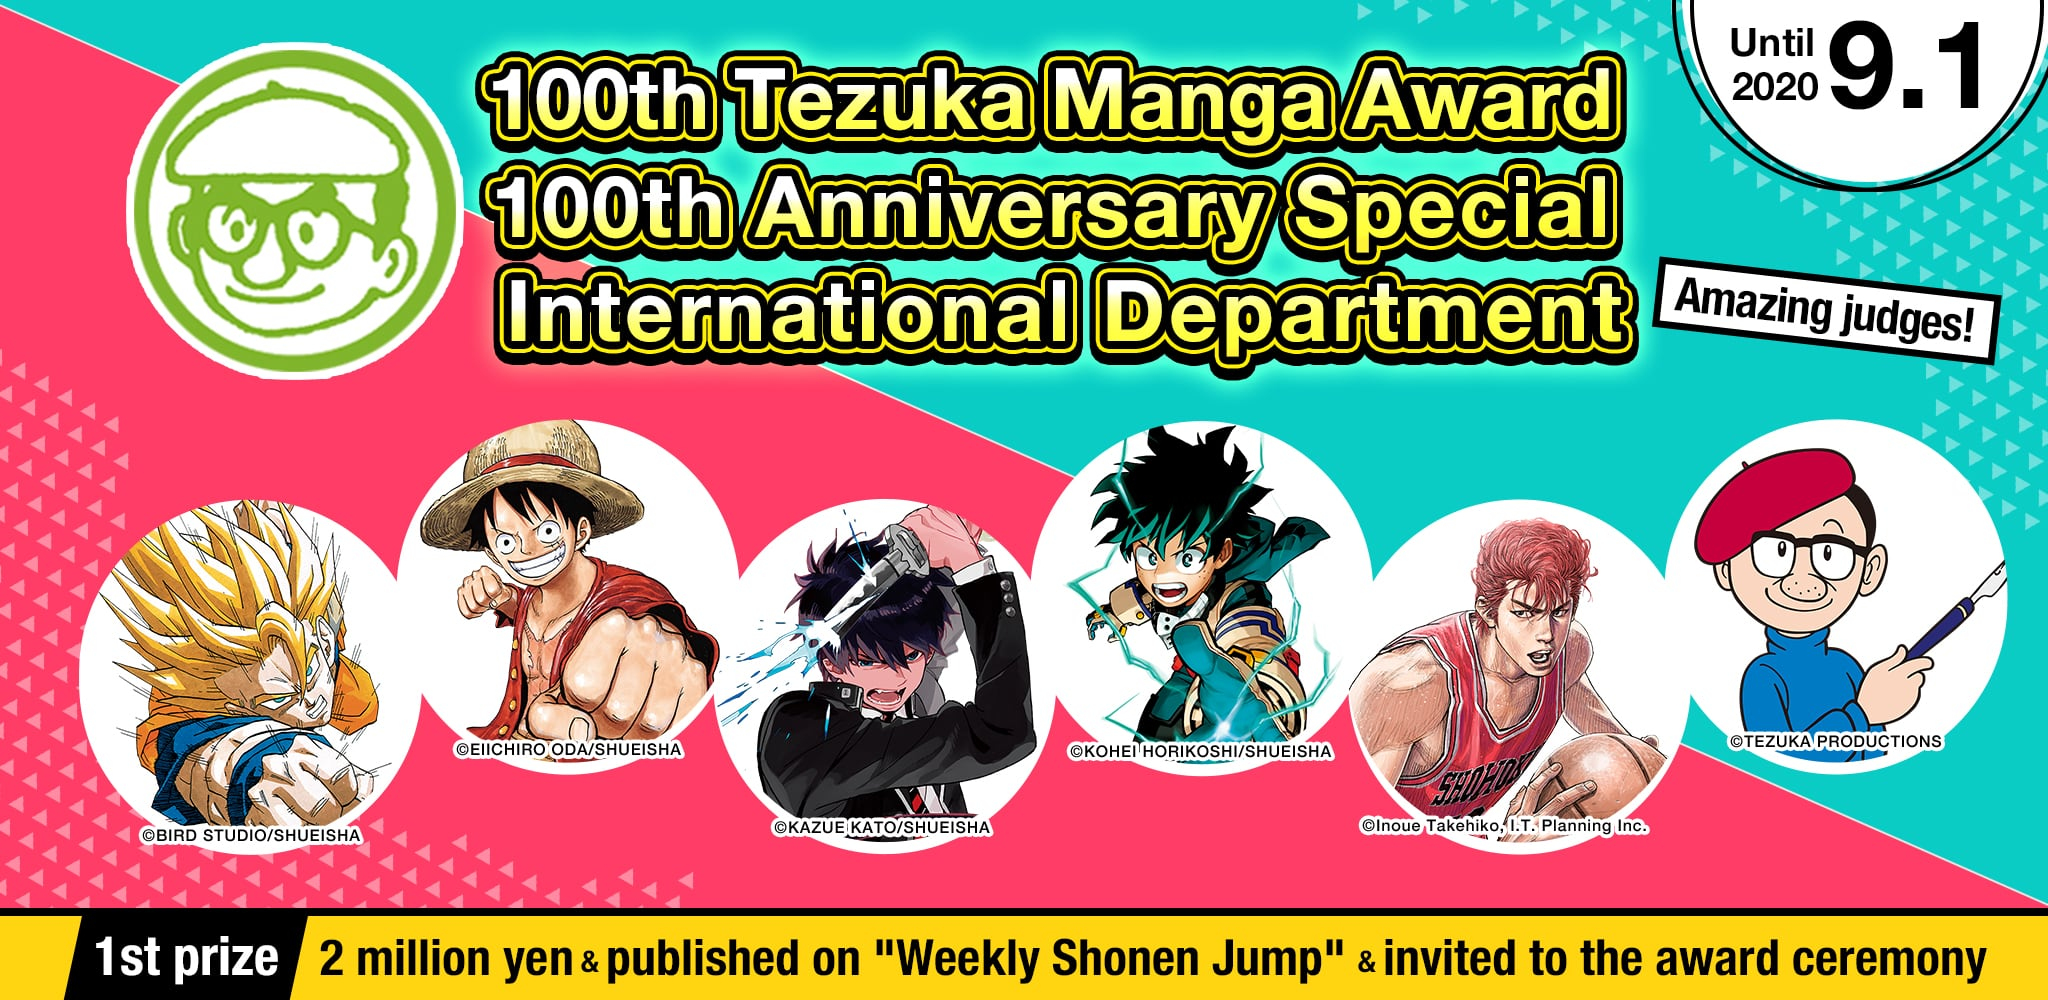 JUMP TEZUKA MANGA CONTEST 100th Anniversary - Oversea Department Special Award| Contest - ART street by MediBang